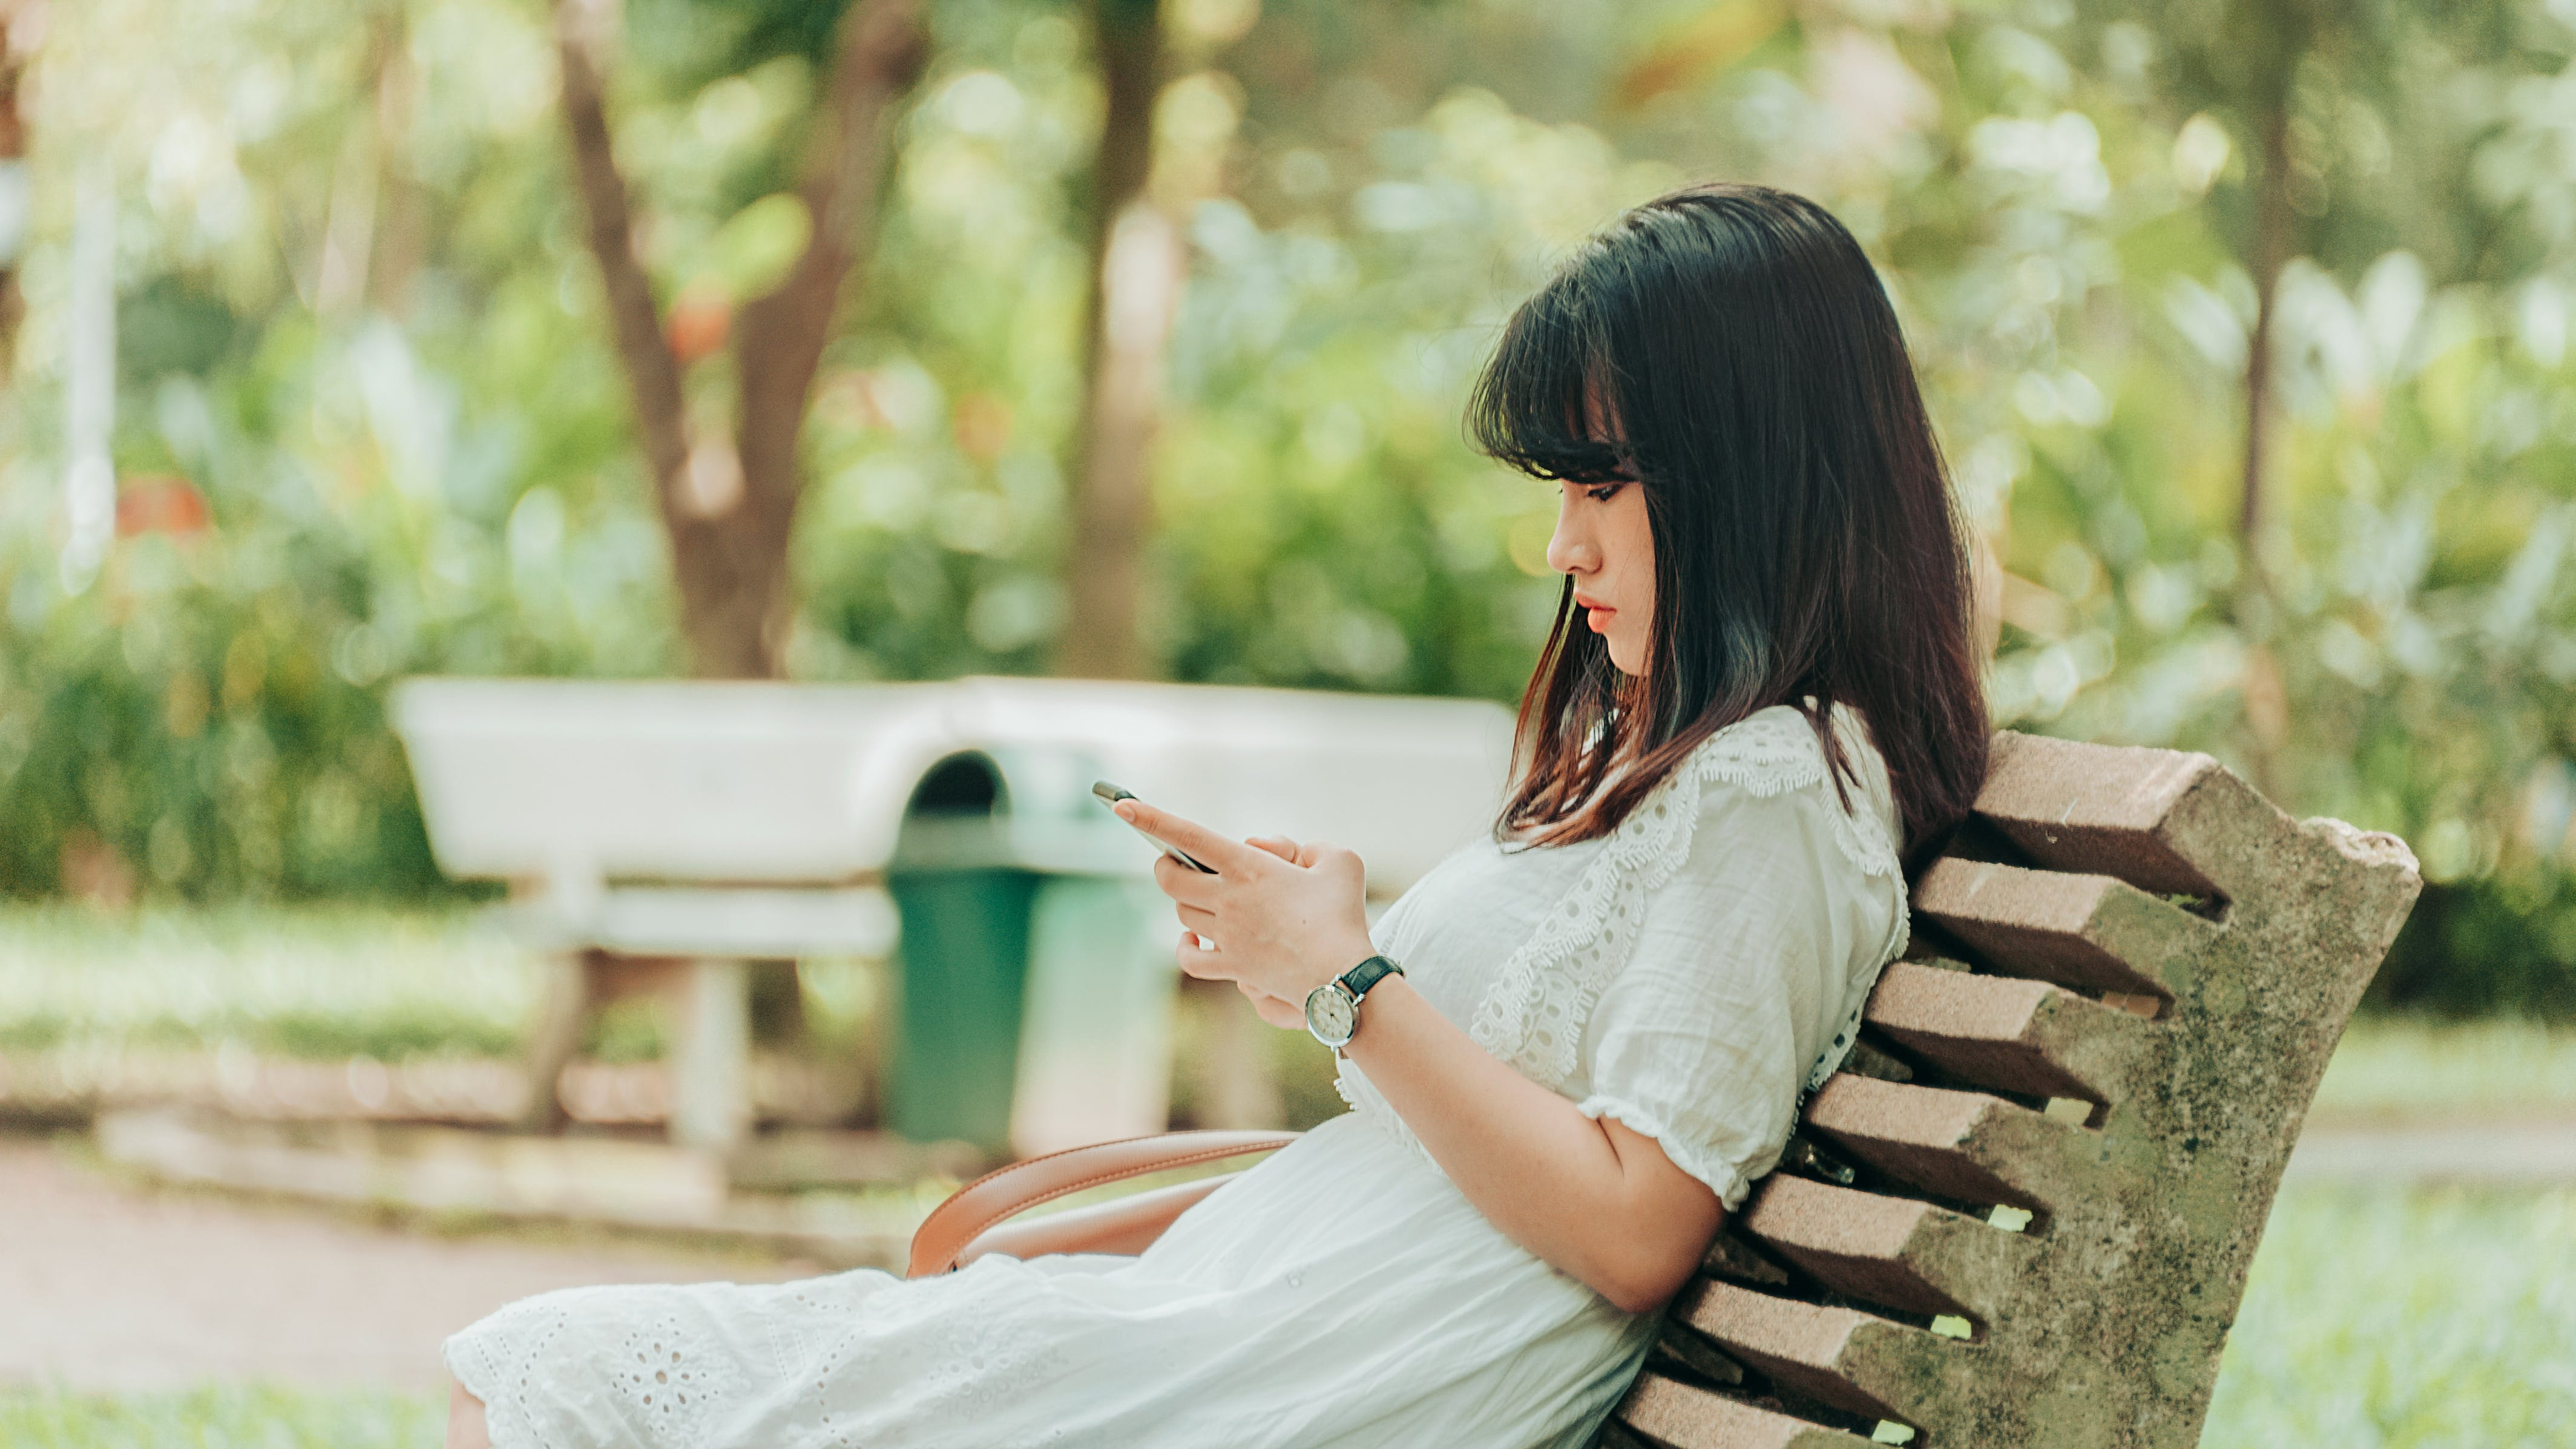 Woman Sitting on Bench Using Smartphone